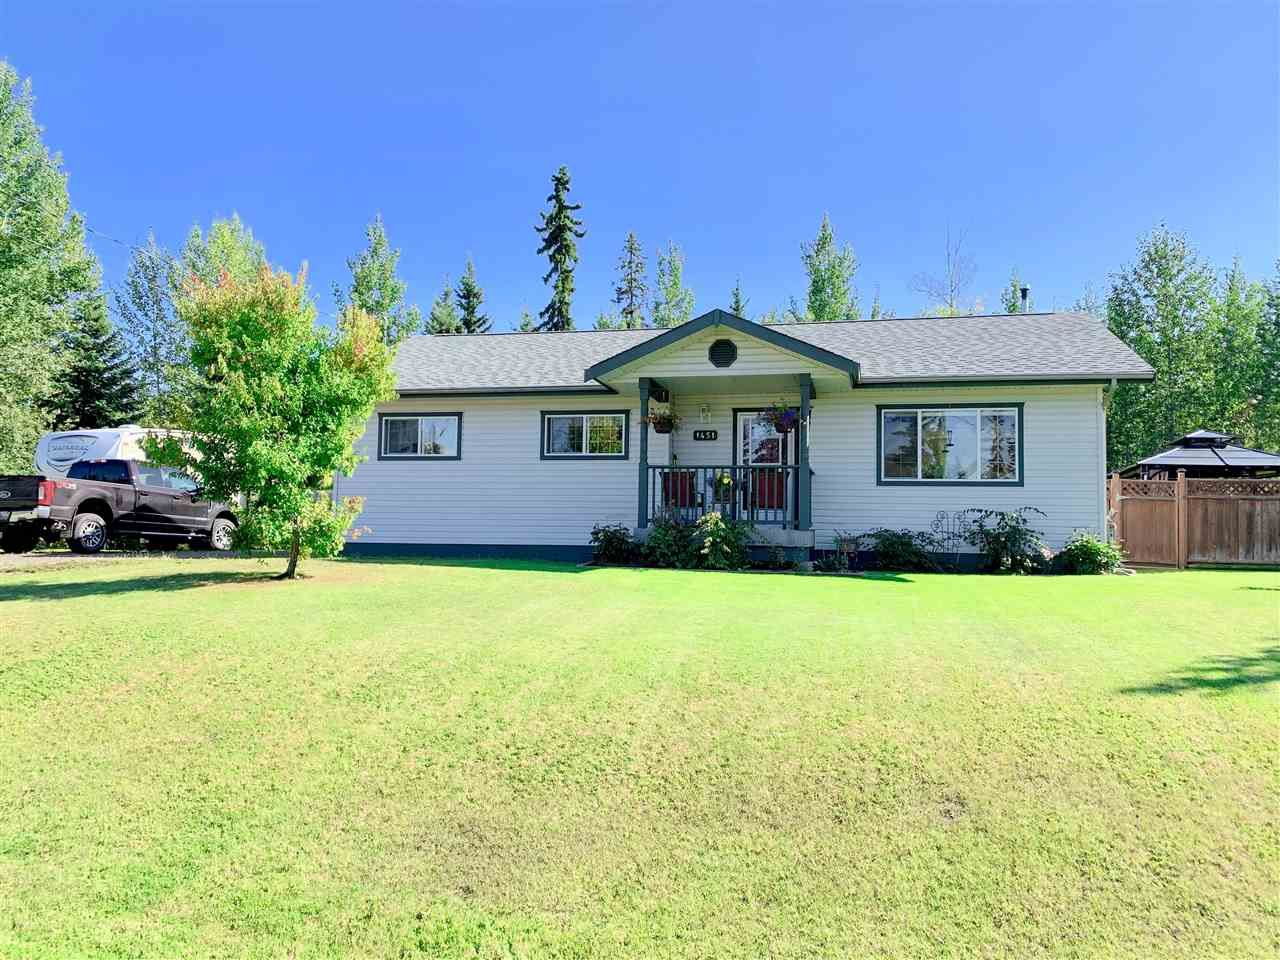 Main Photo: 1451 CHESTNUT Street: Telkwa House for sale (Smithers And Area (Zone 54))  : MLS®# R2399954